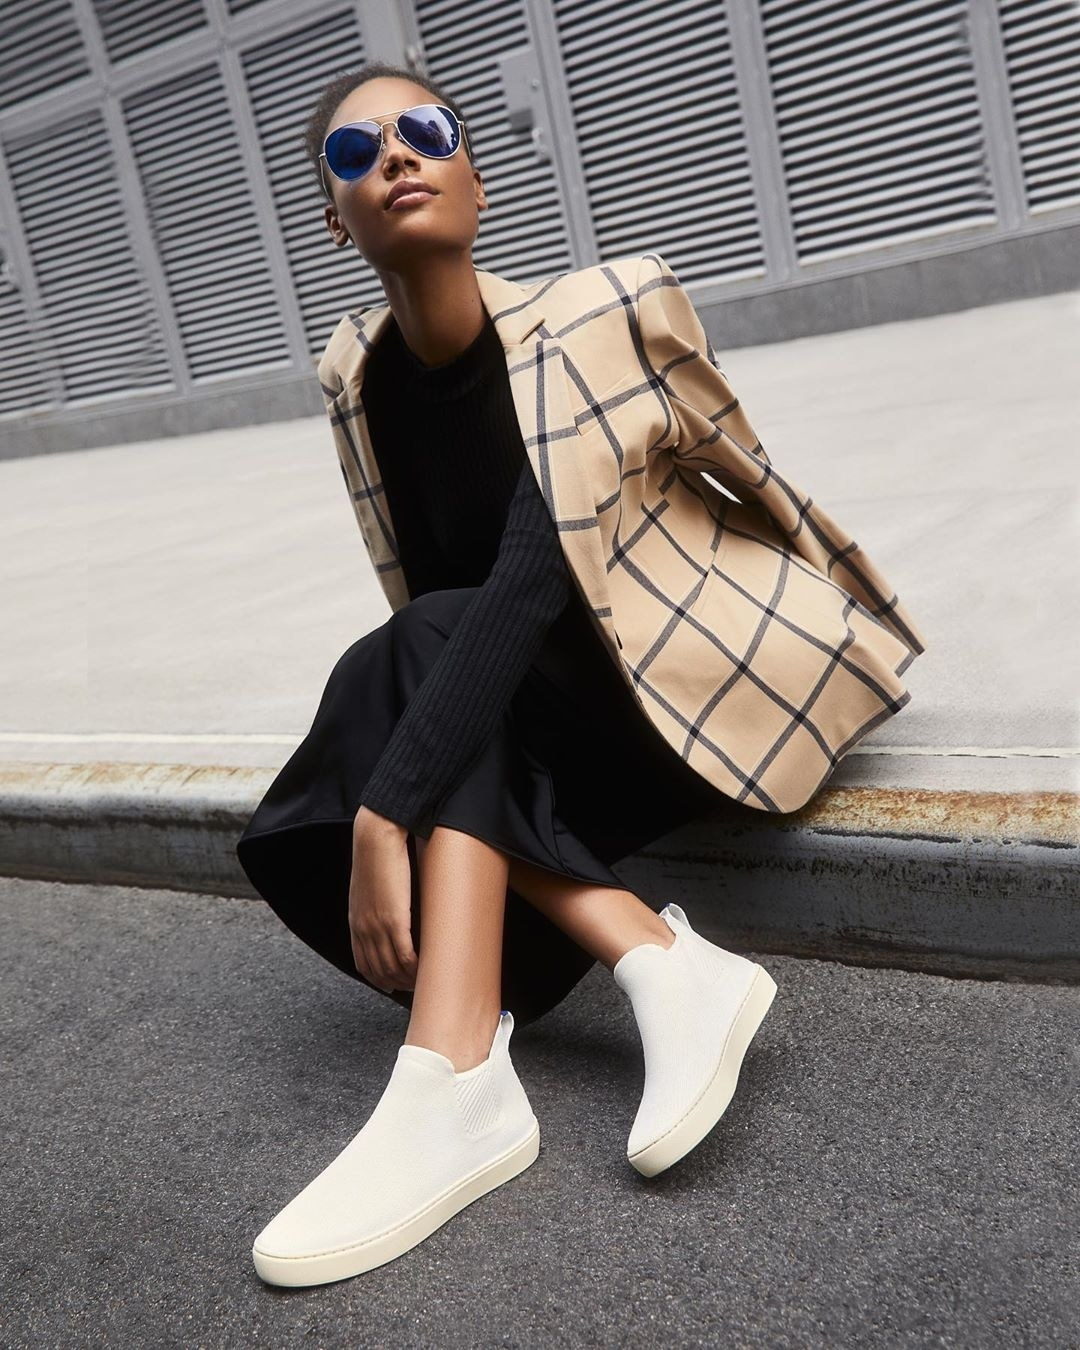 Model wearing Rothy Chelsea boot in white